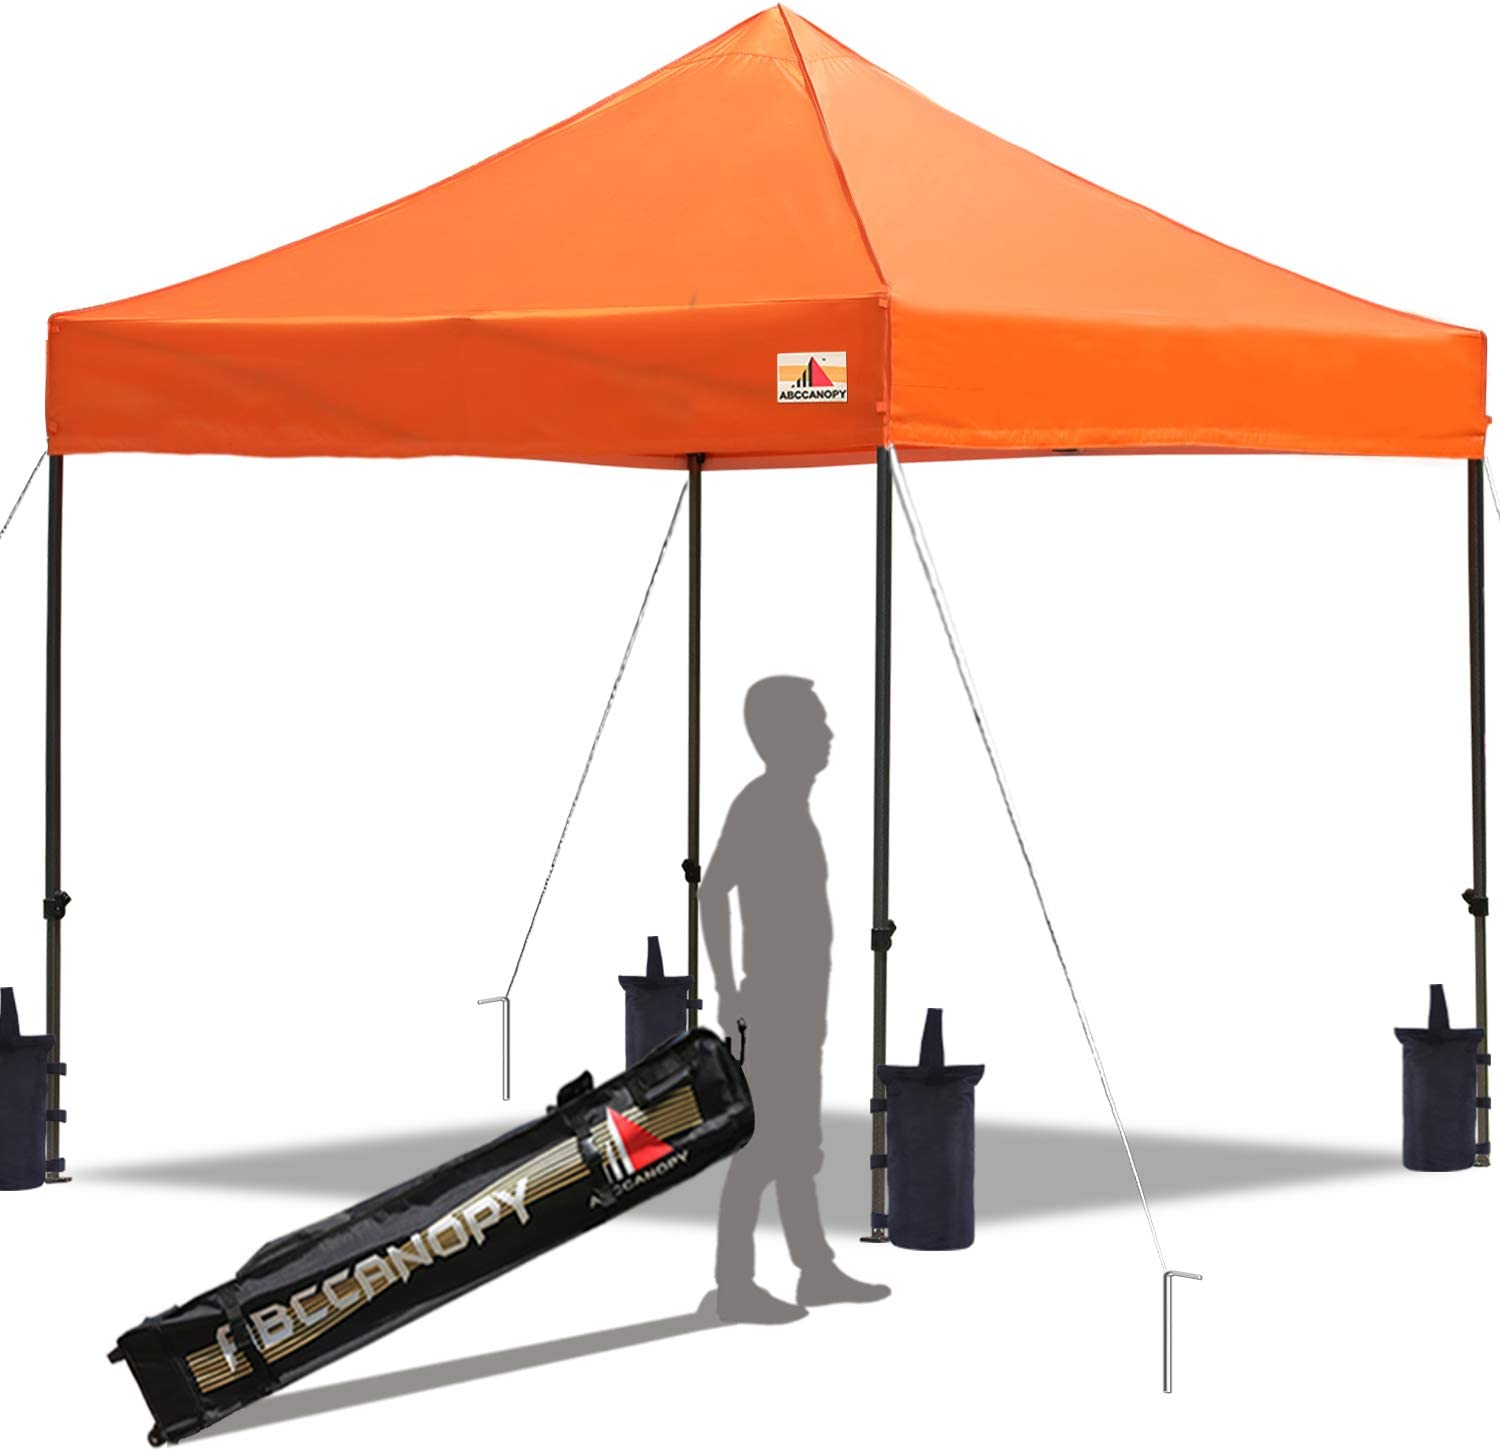 ABCCANOPY Pop up Canopy Tent Commercial Instant Shelter with Wheeled Carry Bag, Bonus 4 Canopy Sand Bags, 10×10 FT Orange